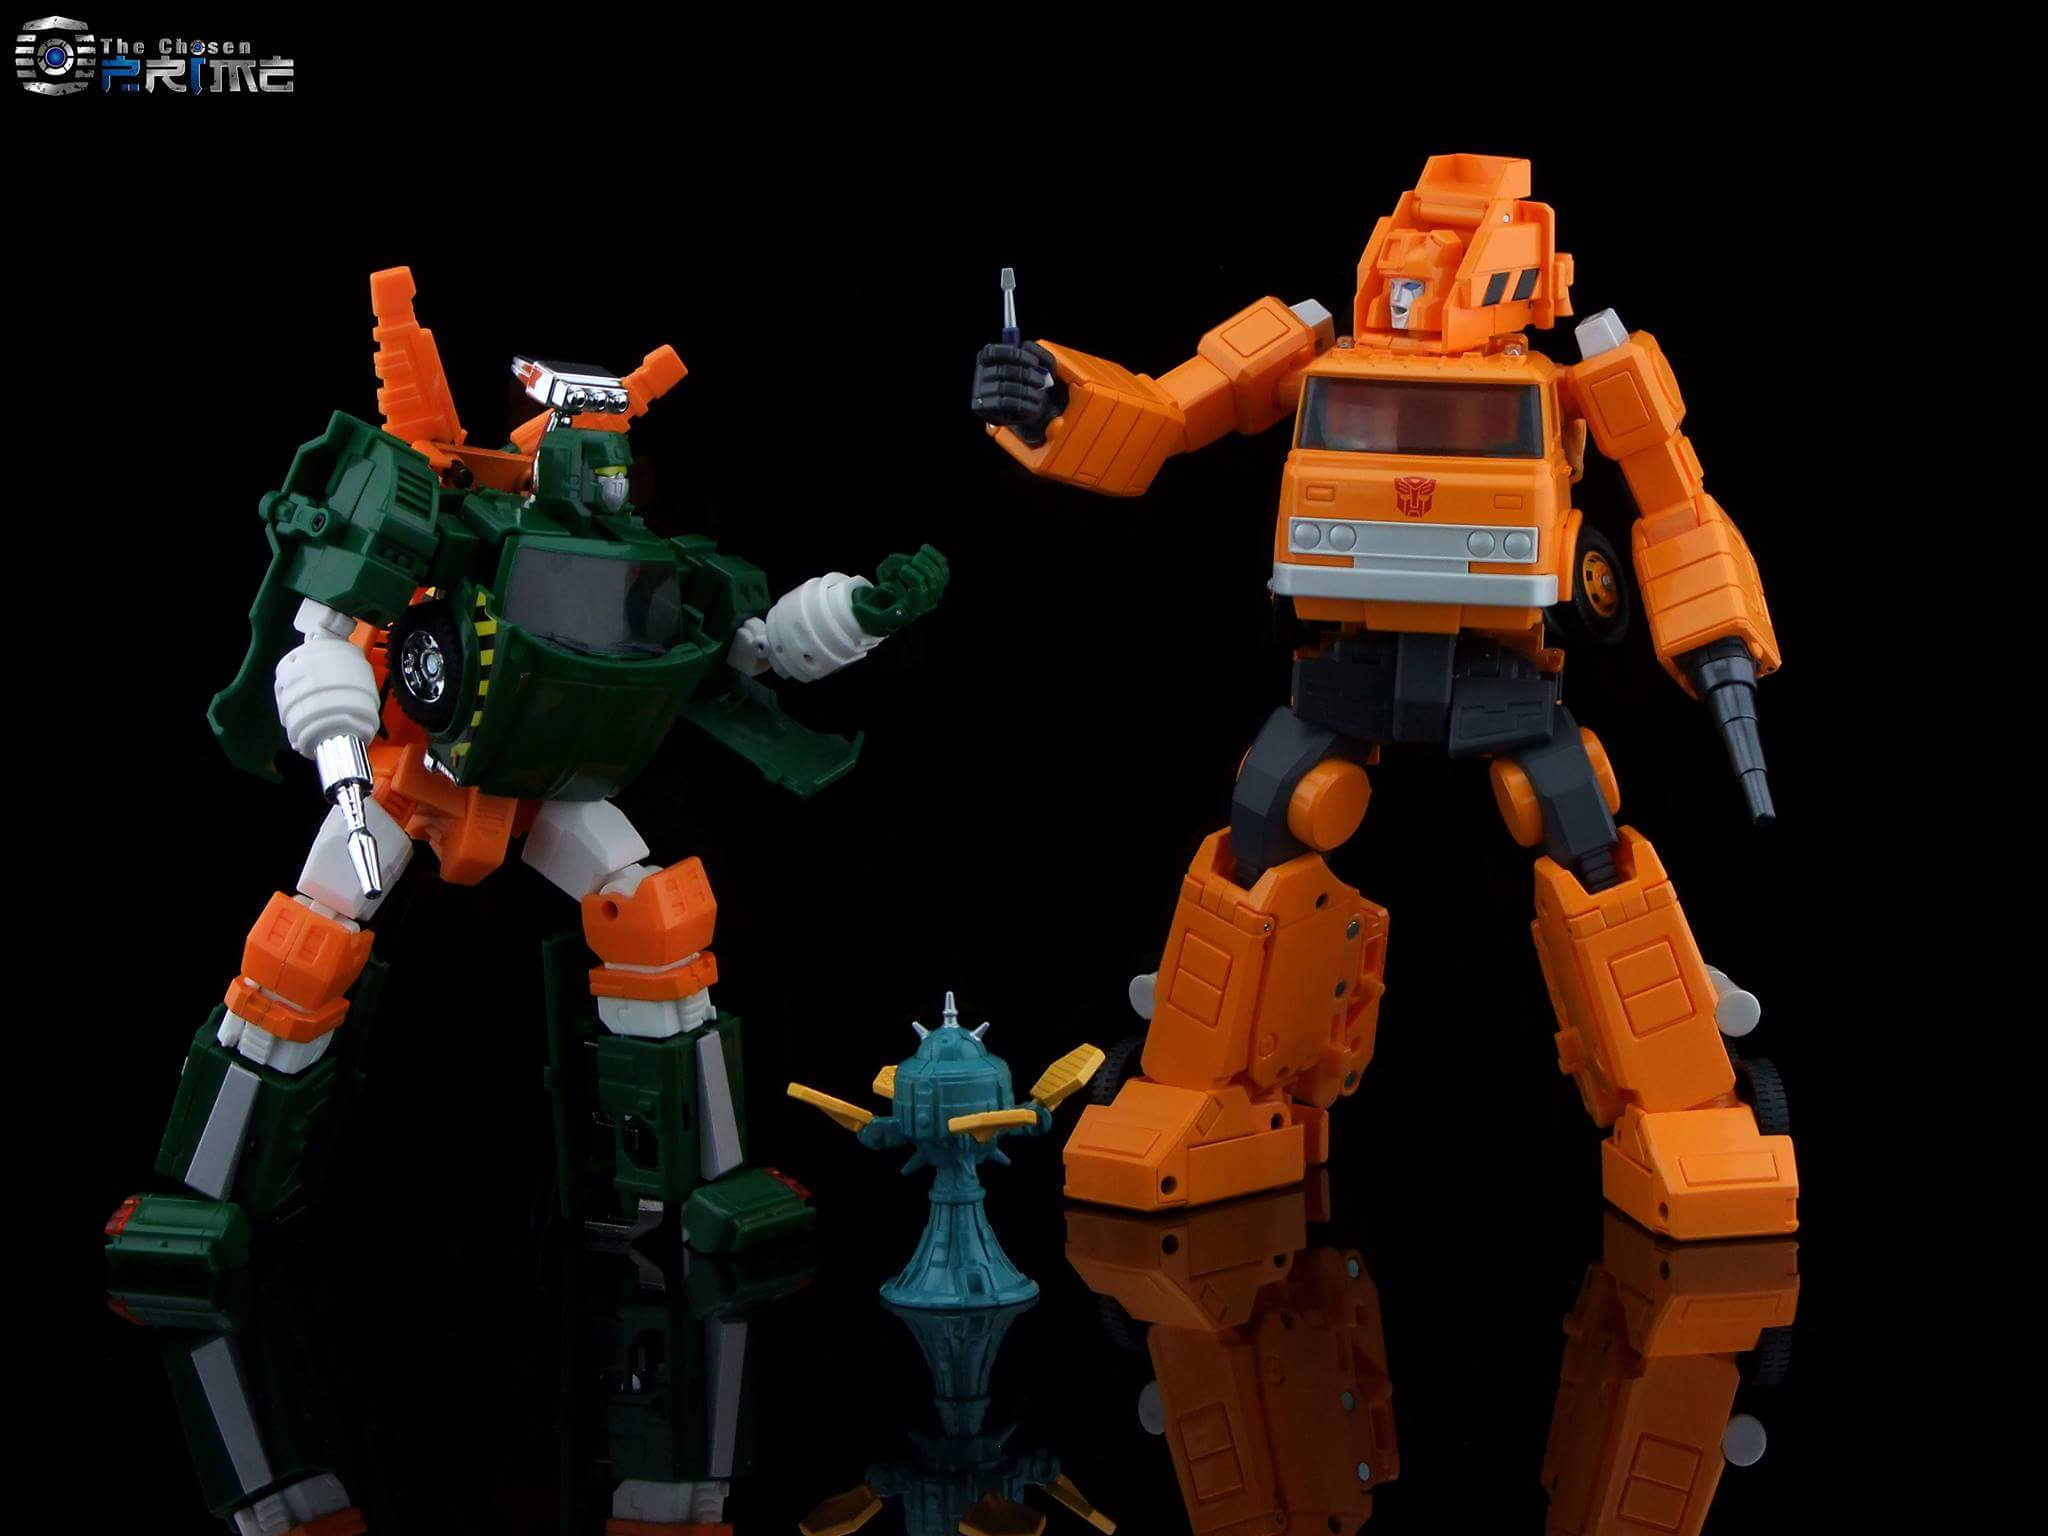 [Masterpiece] MP-35 Grapple/Grappin TEYHH5sM